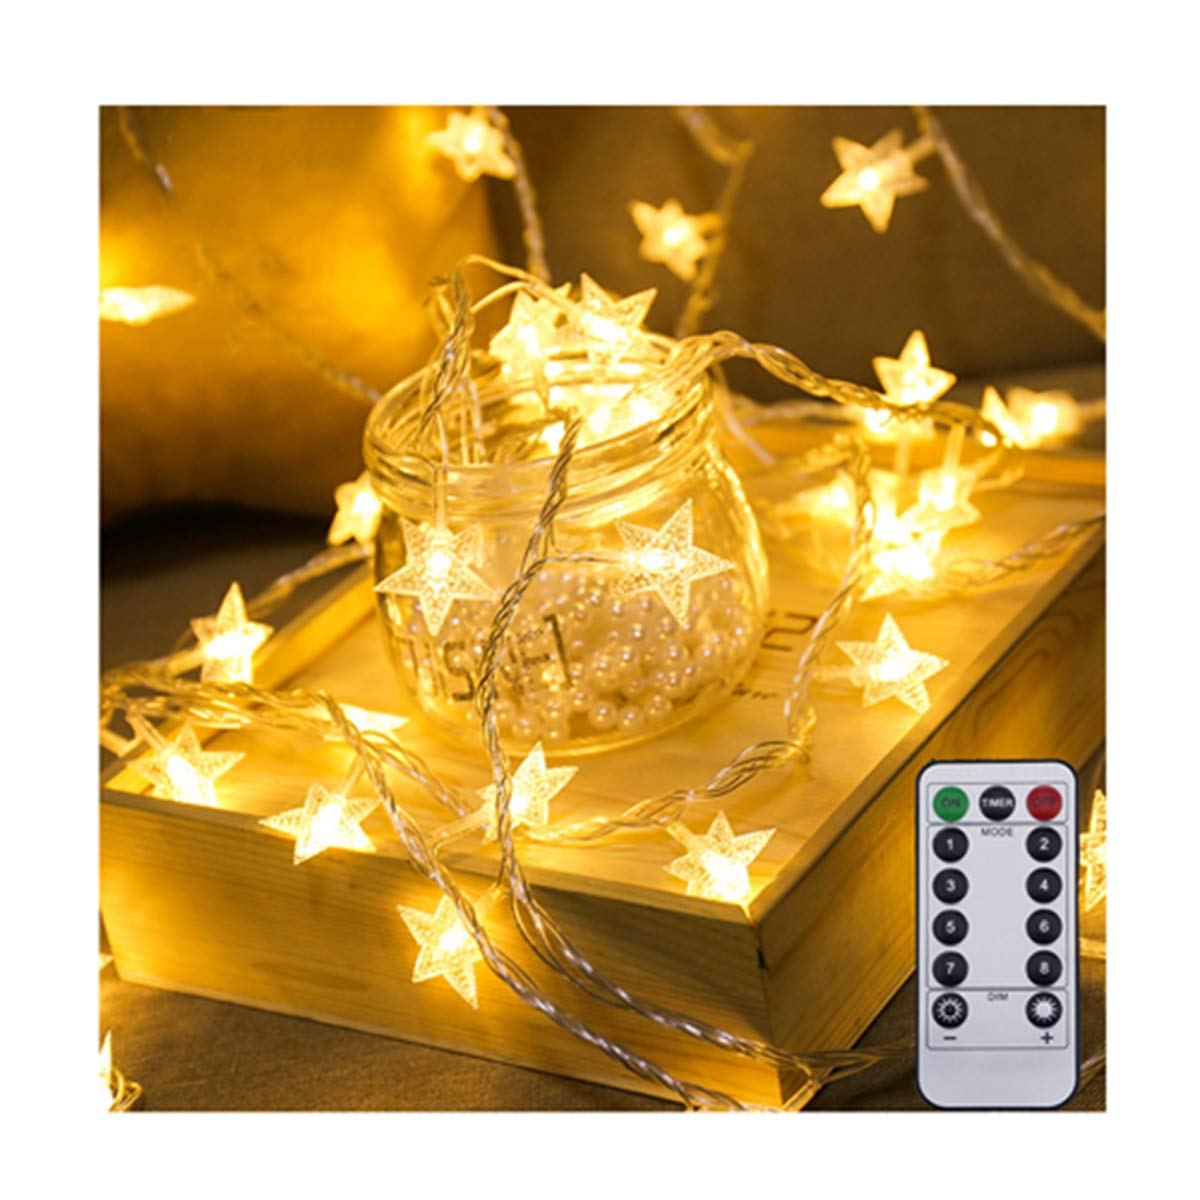 Star String Lights,LED Star Lights Remote Control 17Ft 50pcs USB Indoor Fairy Lights Warm White for Patio Christmas Wedding Bedroom Princess Castle Play Tents Decoration